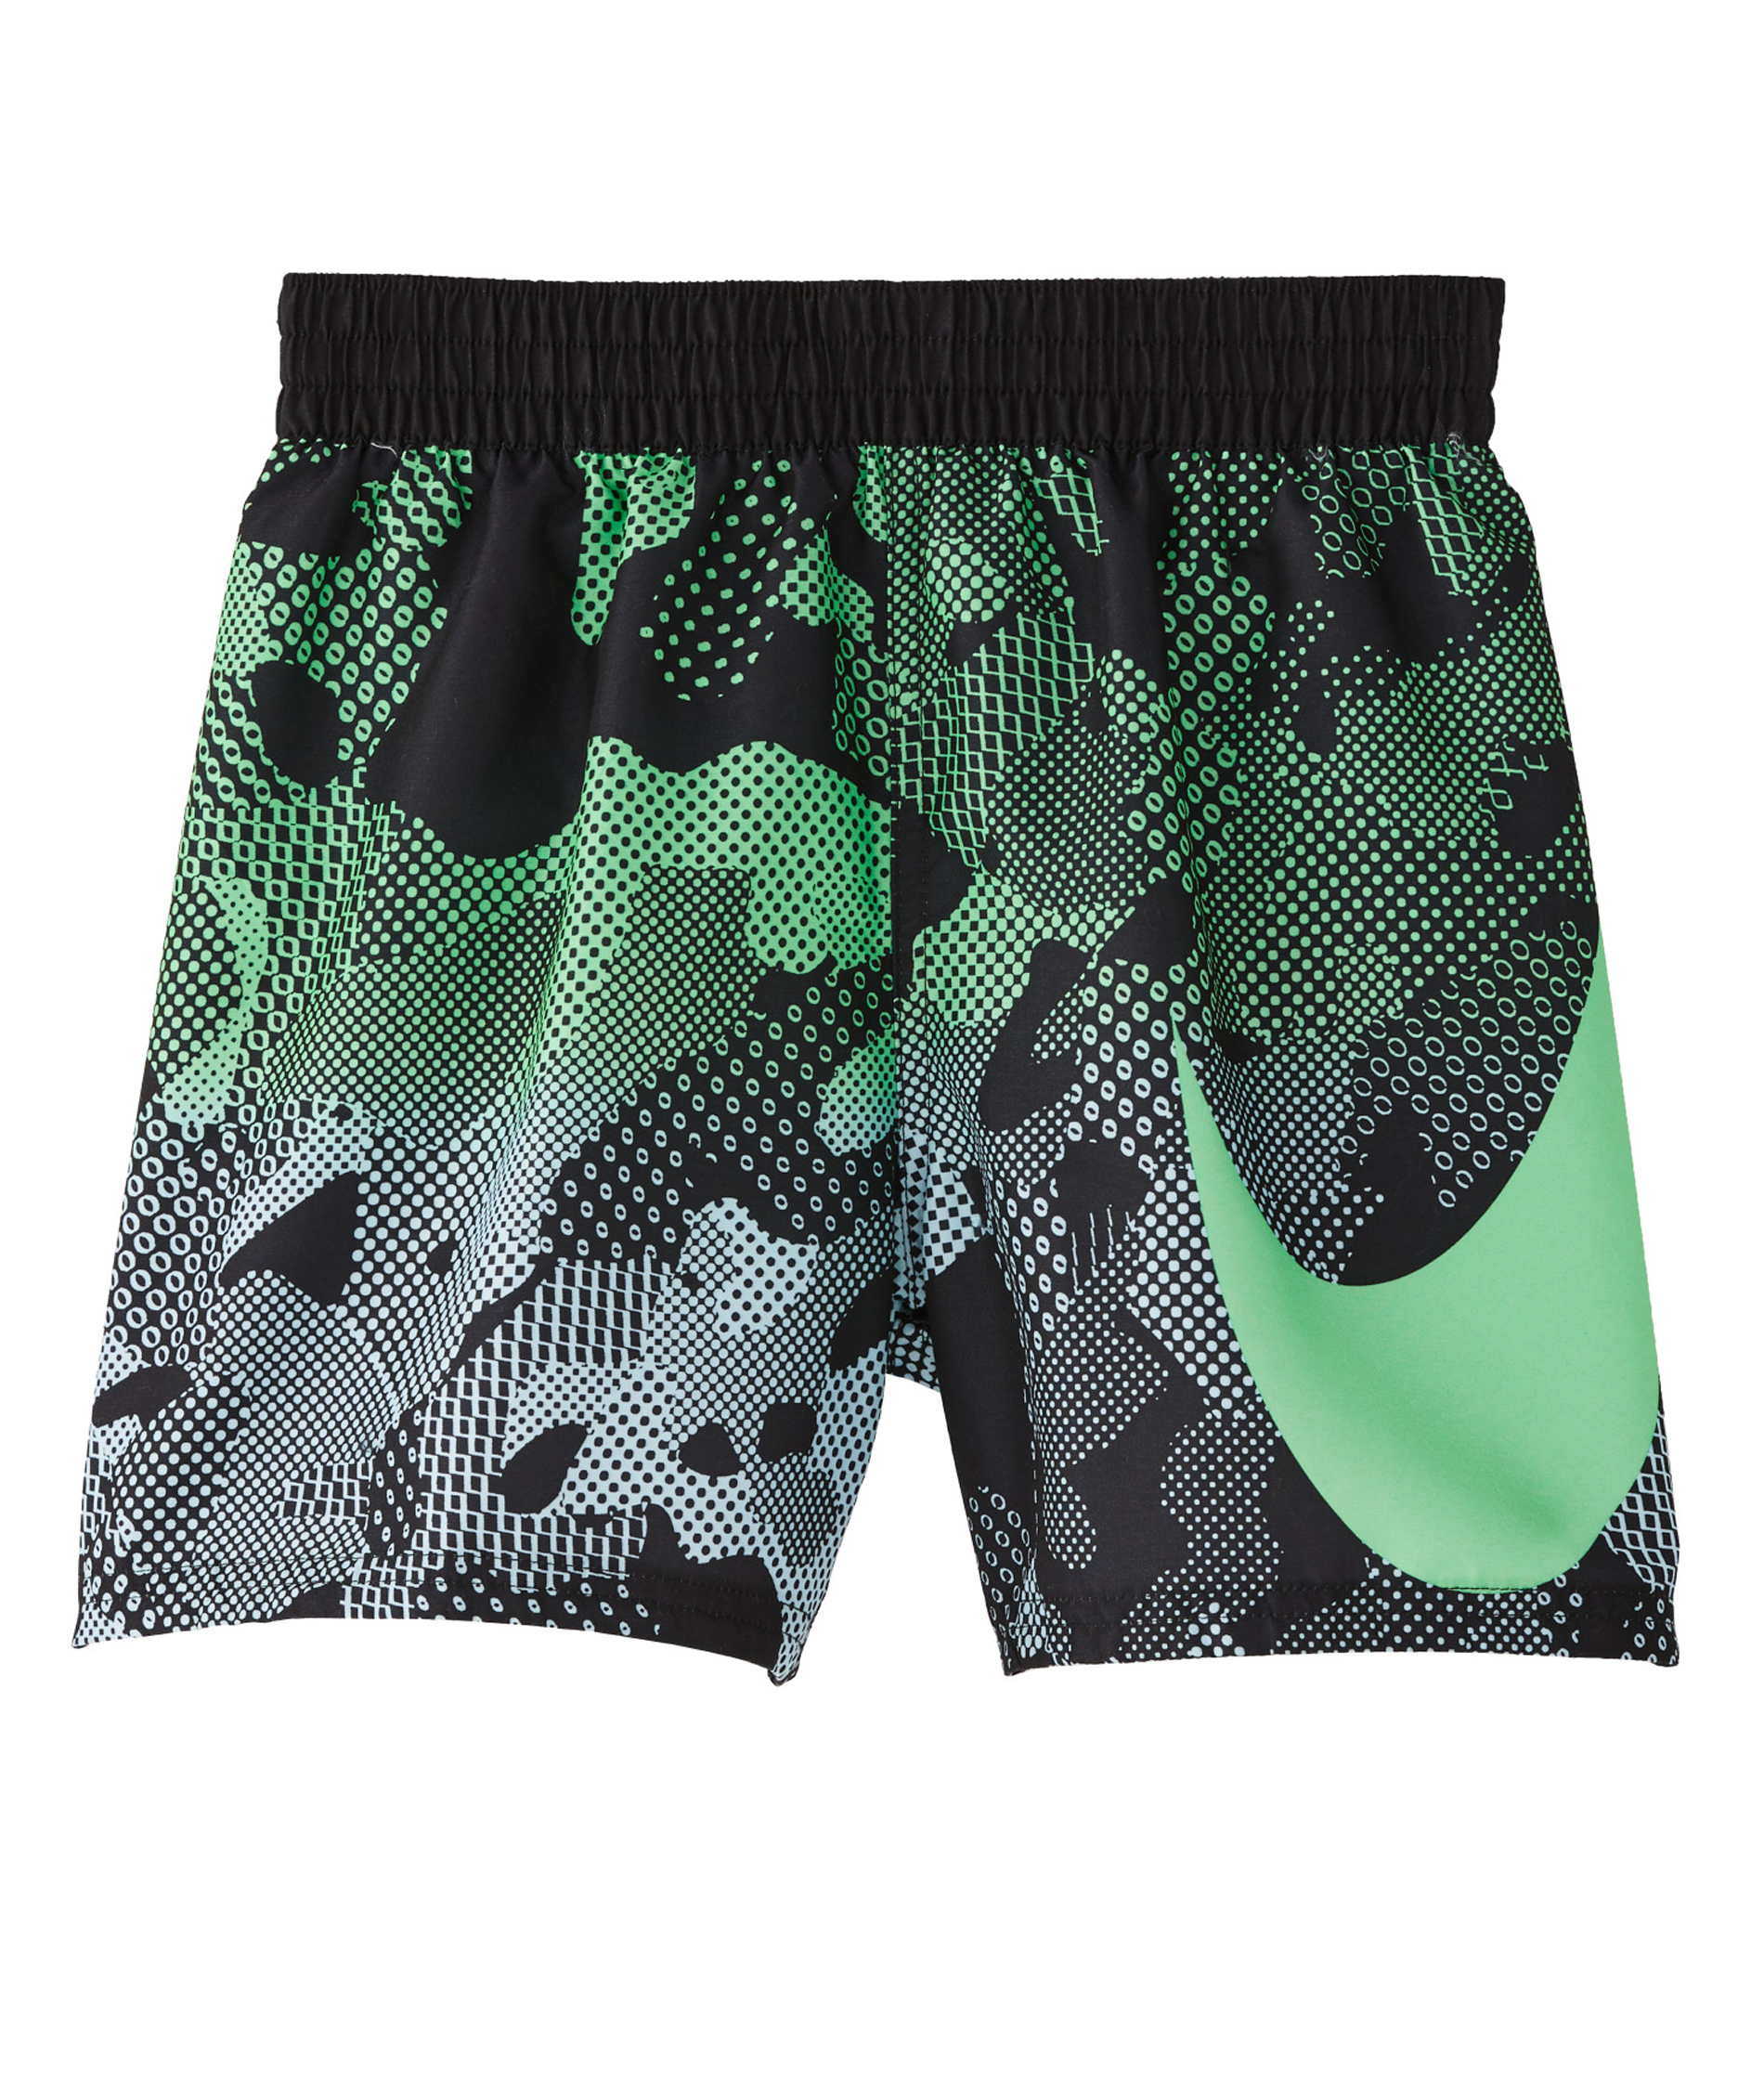 Nike Swim Boys 4 Volley Short - Electro Green